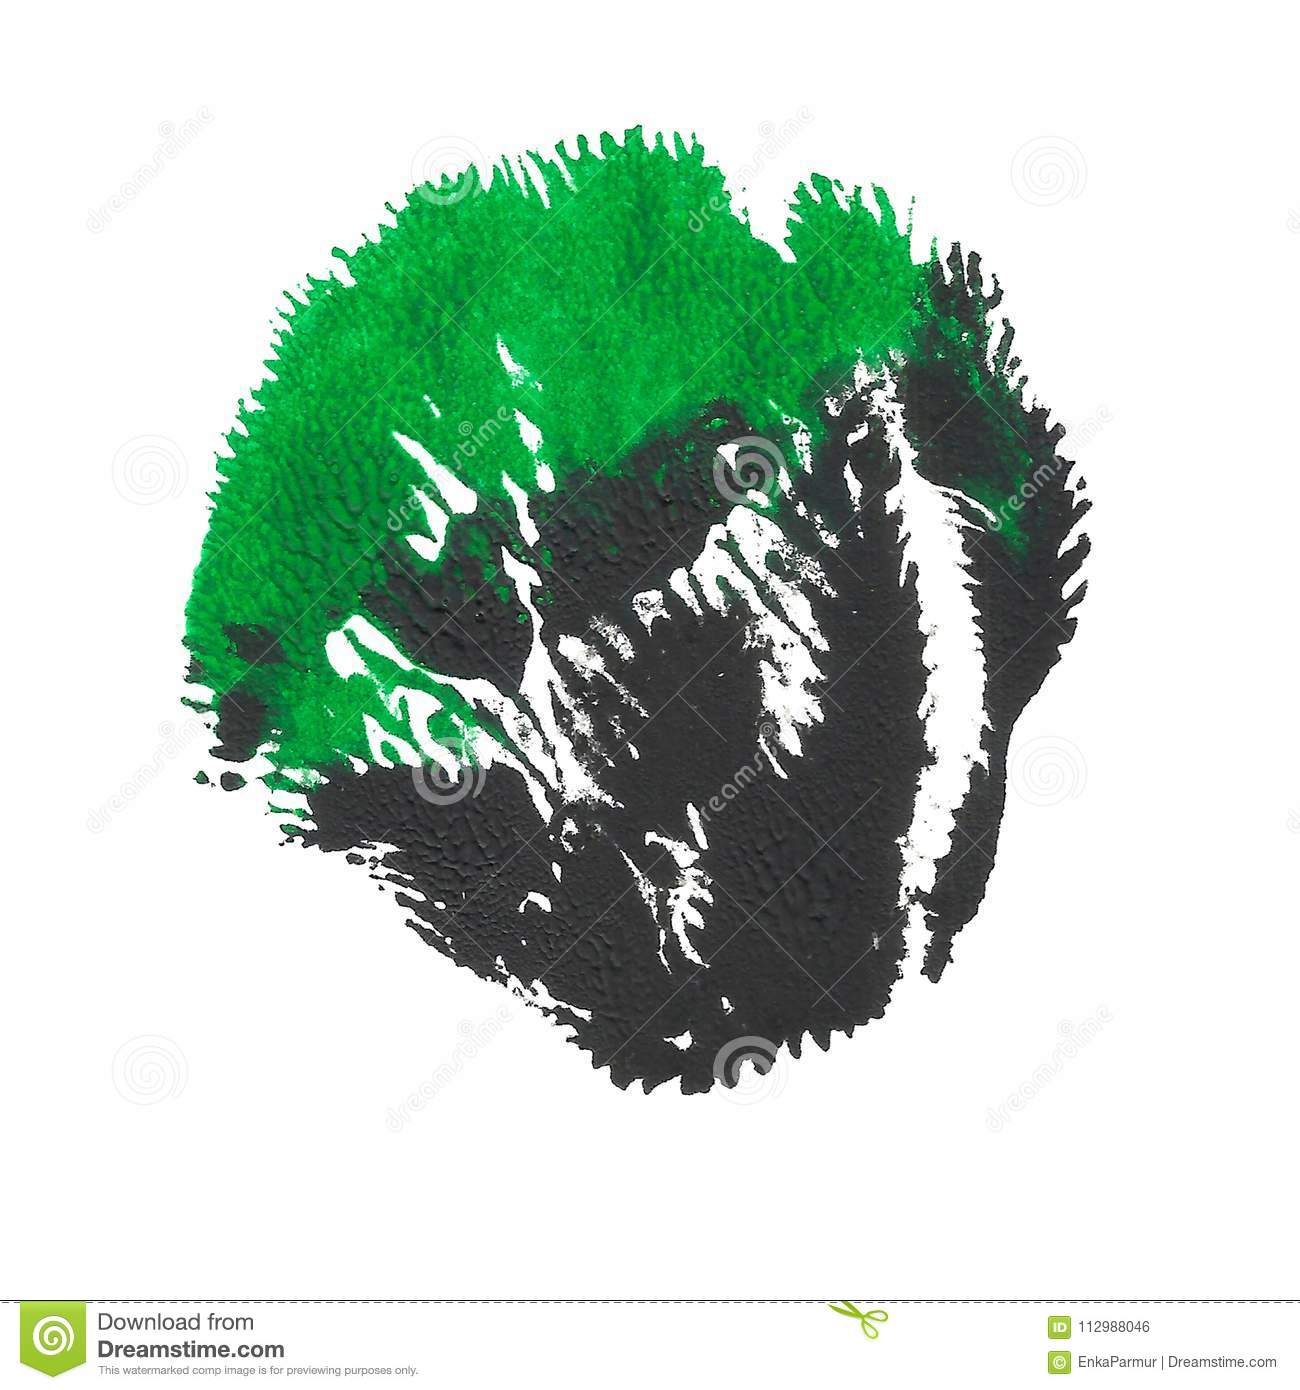 Abstract acrylic spot isolated on white background. Green black vibrant color.